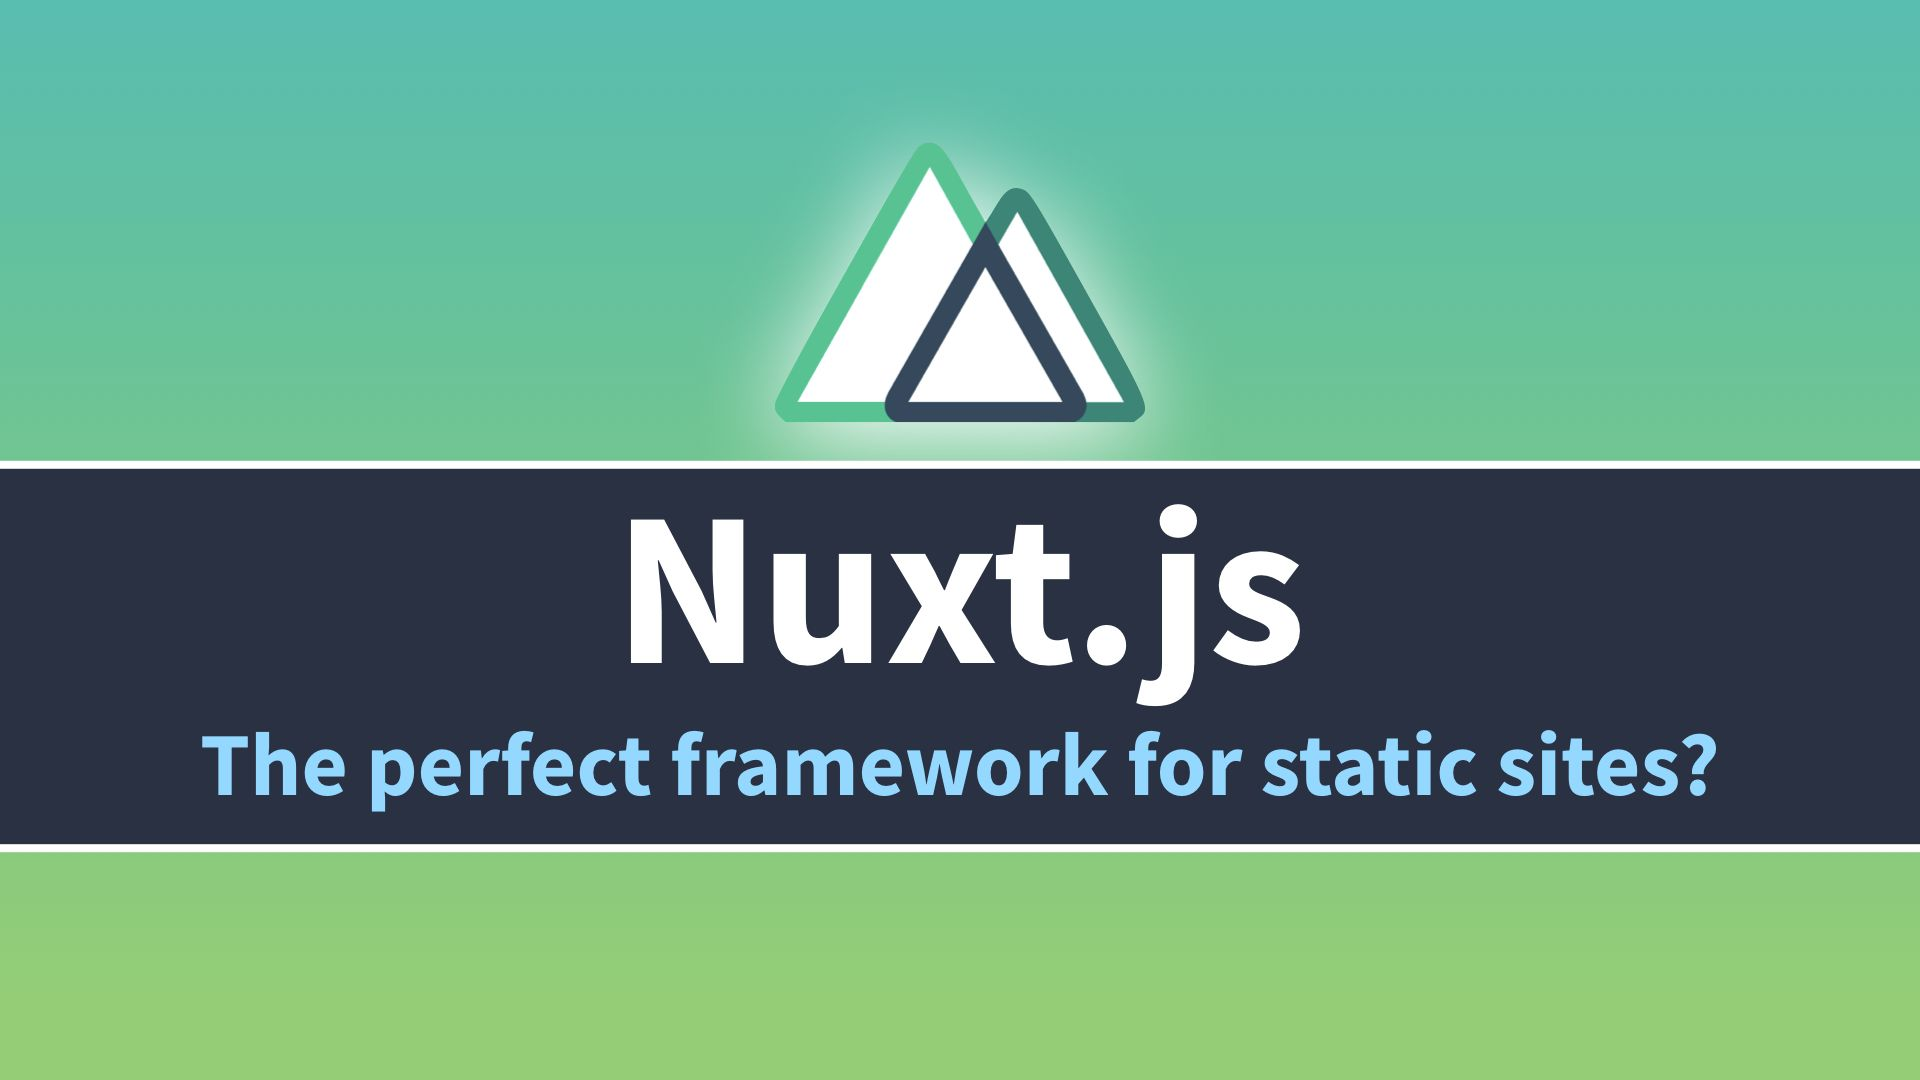 Why Nuxt.js is the perfect framework for building static websites